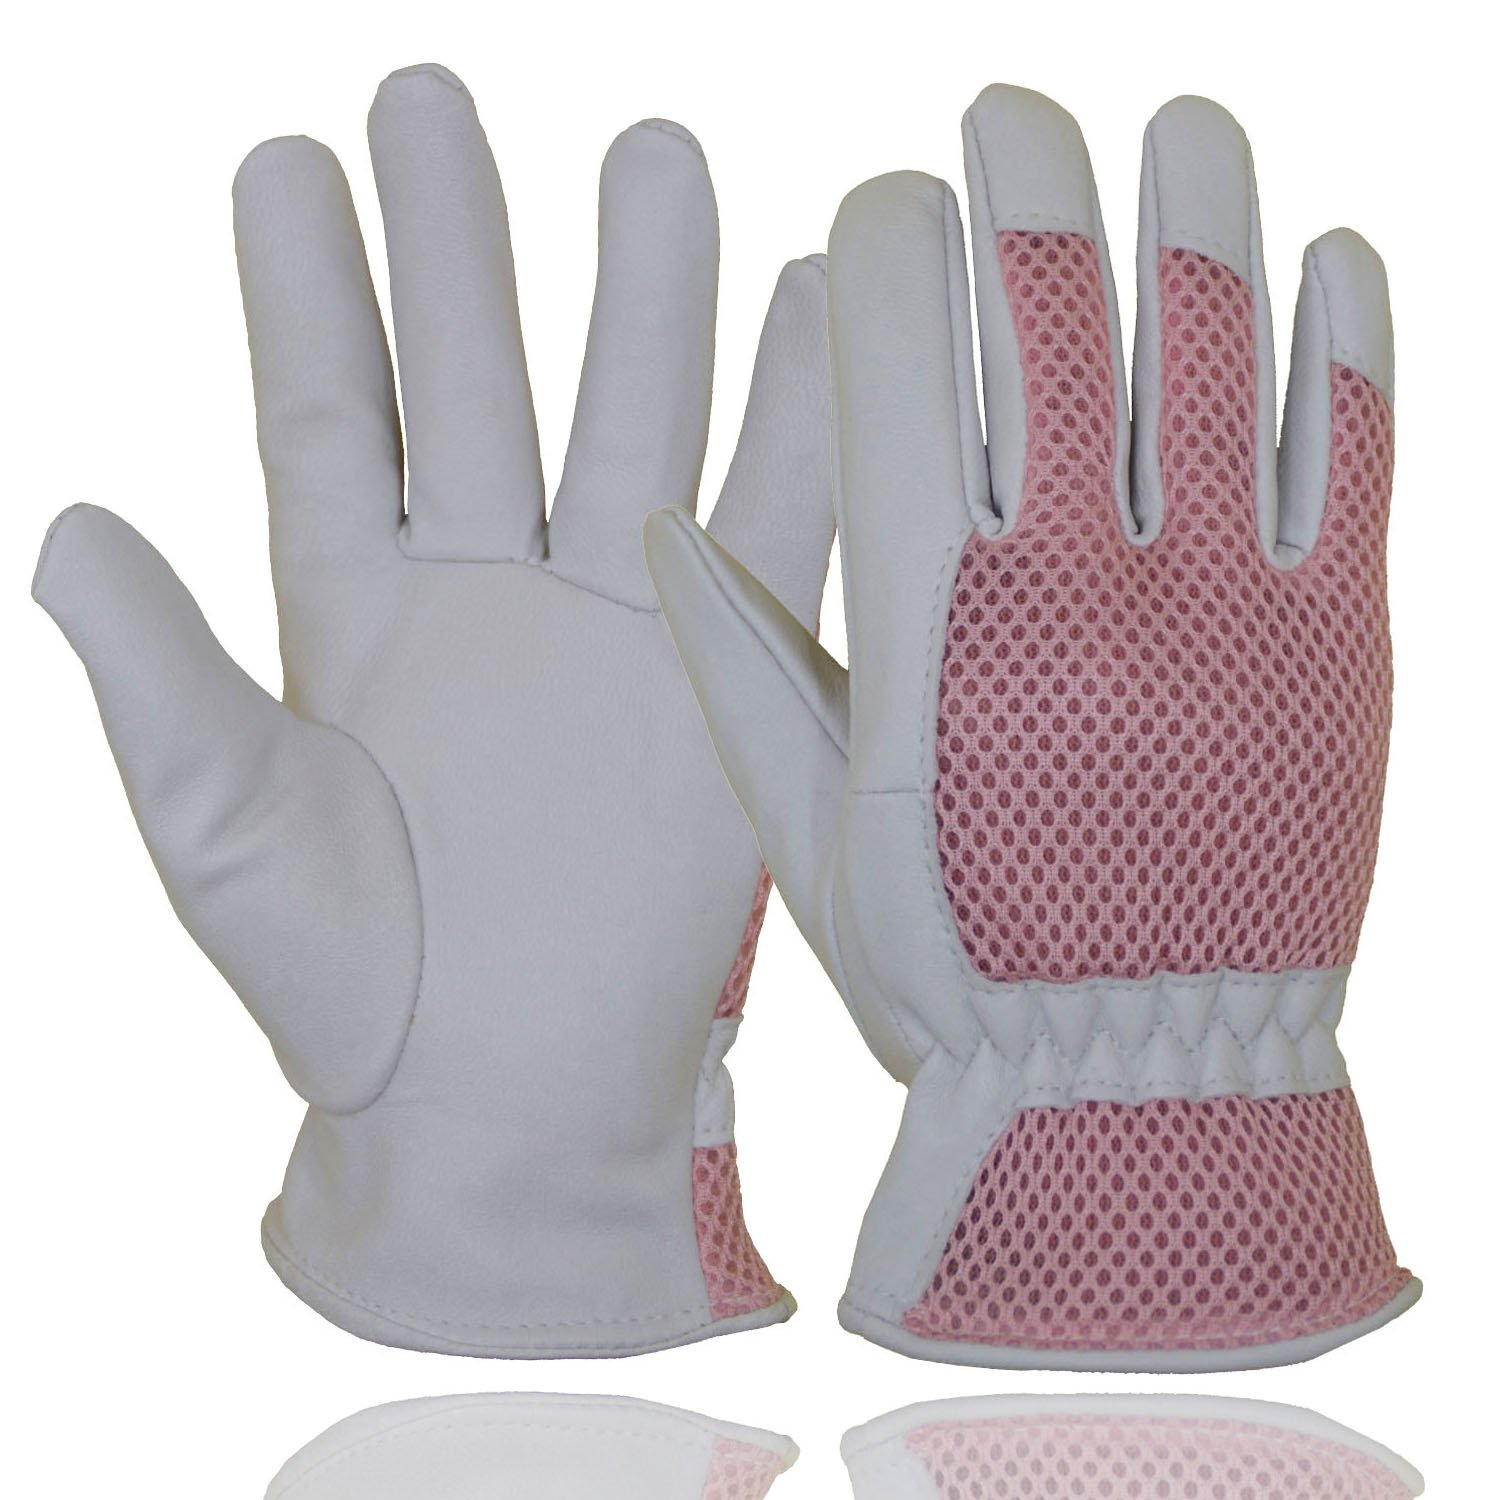 Goatskin Leather Gardening Gloves Women, 3D Mesh Comfort Fit- Improves Dexterity and Breathability Design, Scratch Resistance Garden Working Gloves for Vegetable or Pruning Roses (Small/ Pink)